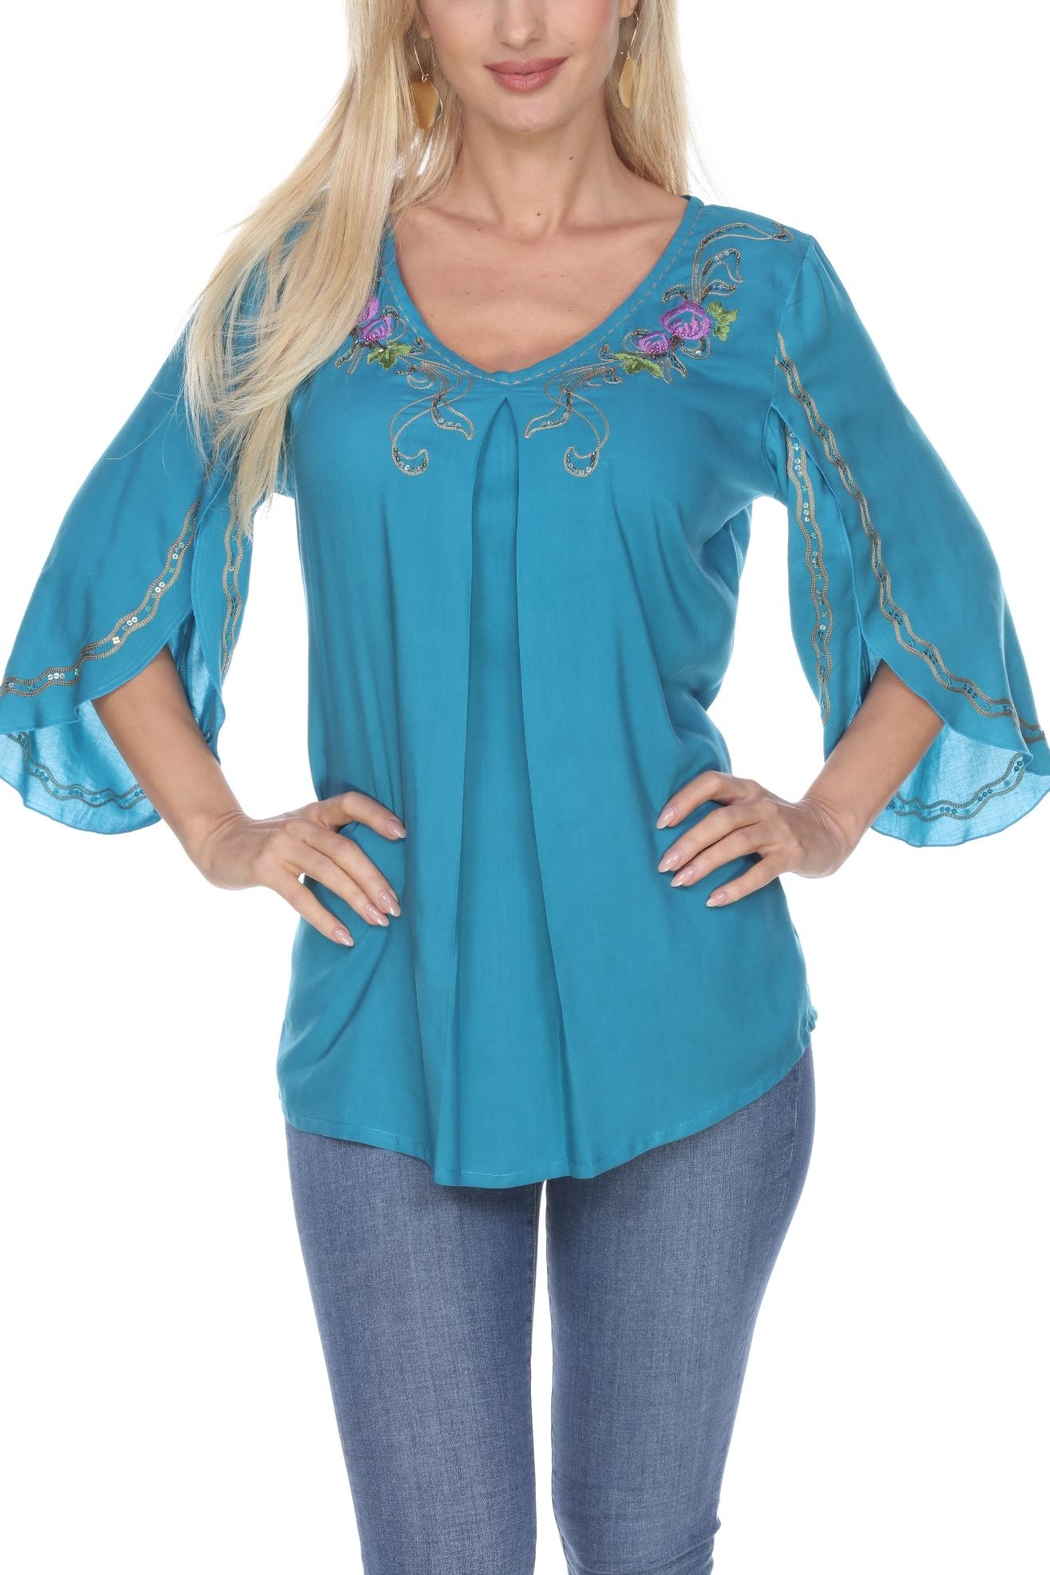 Krista Lee Butterfly Sleeve Top - Main Image